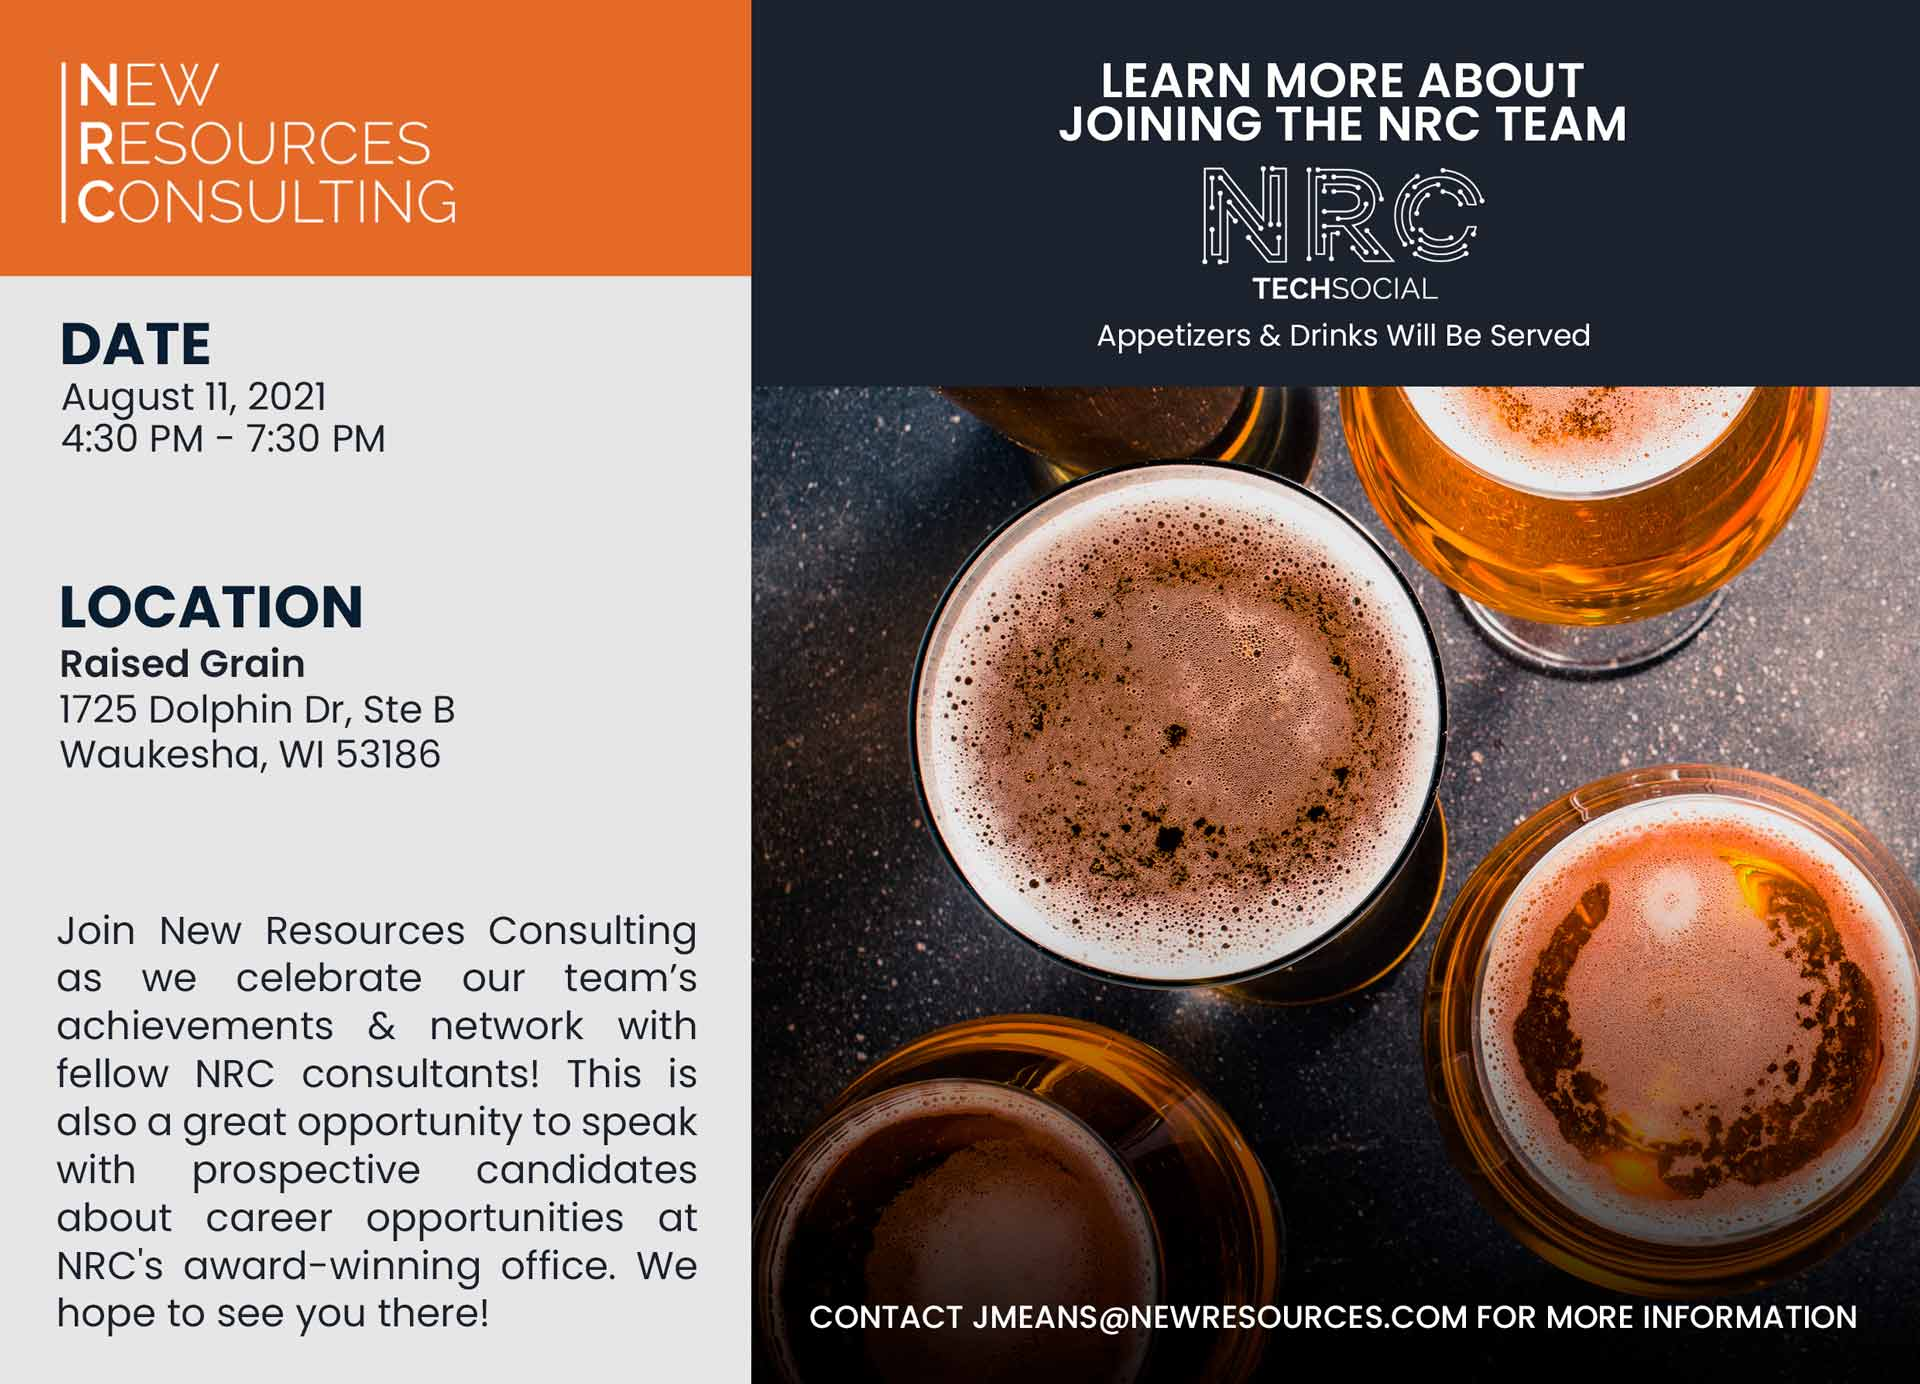 NRC Tech Social | New Resources Consulting